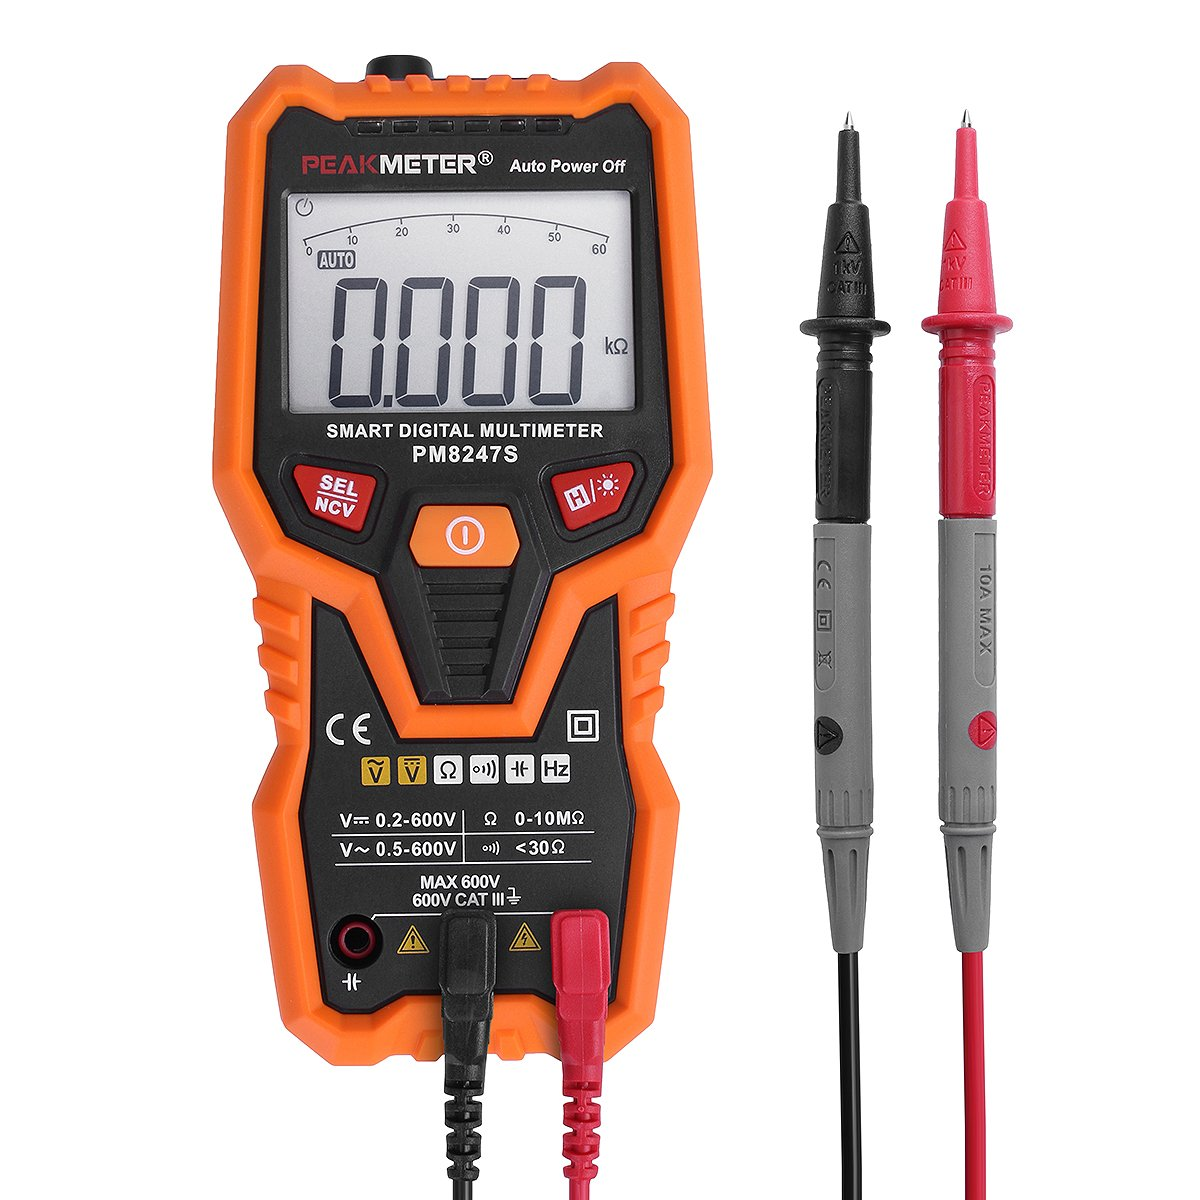 Smart RPS Digital Multimeter, PEAKMETER PM8247S Auto Range Professional DC AC Multimeter Voltage Current Tester